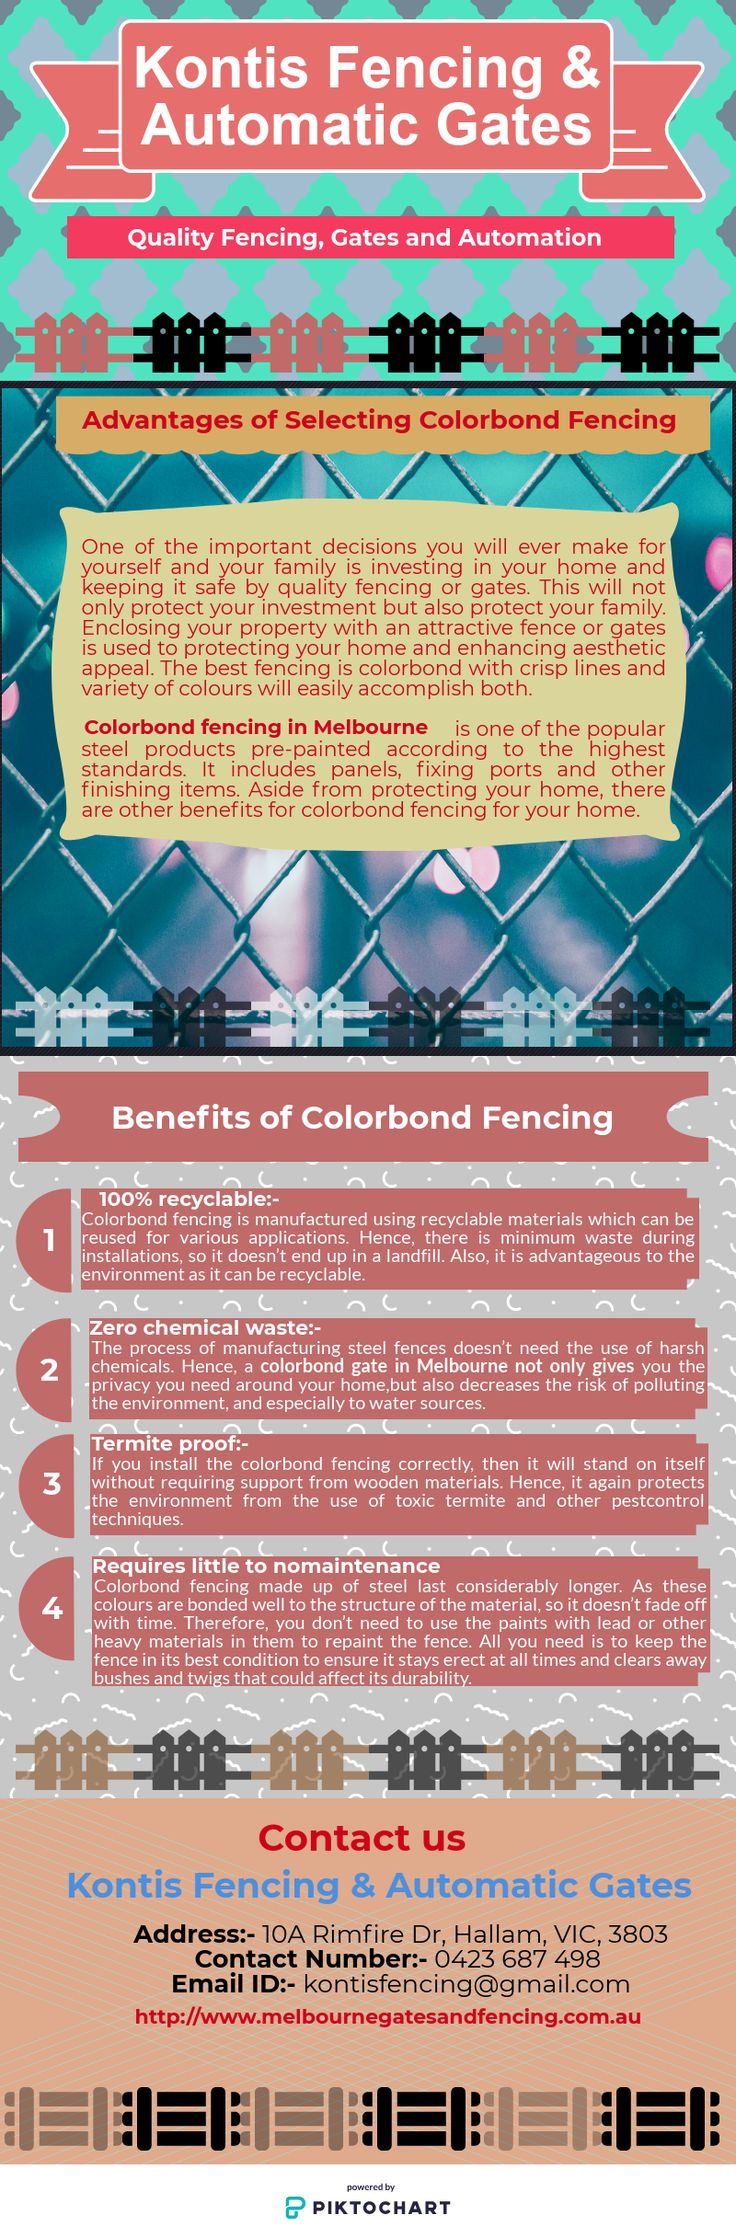 If you are looking for quality colorbond fencing in Melbourne, then Kontis Fencing is the best choice for you. You will get high-quality solutions for all applications. Your new fence will also come fully guaranteed for peace of mind.   Contact at 0423 678 498 or visit our website http://www.melbournegatesandfencing.com.au and select from a big range of styles to enhance your property.